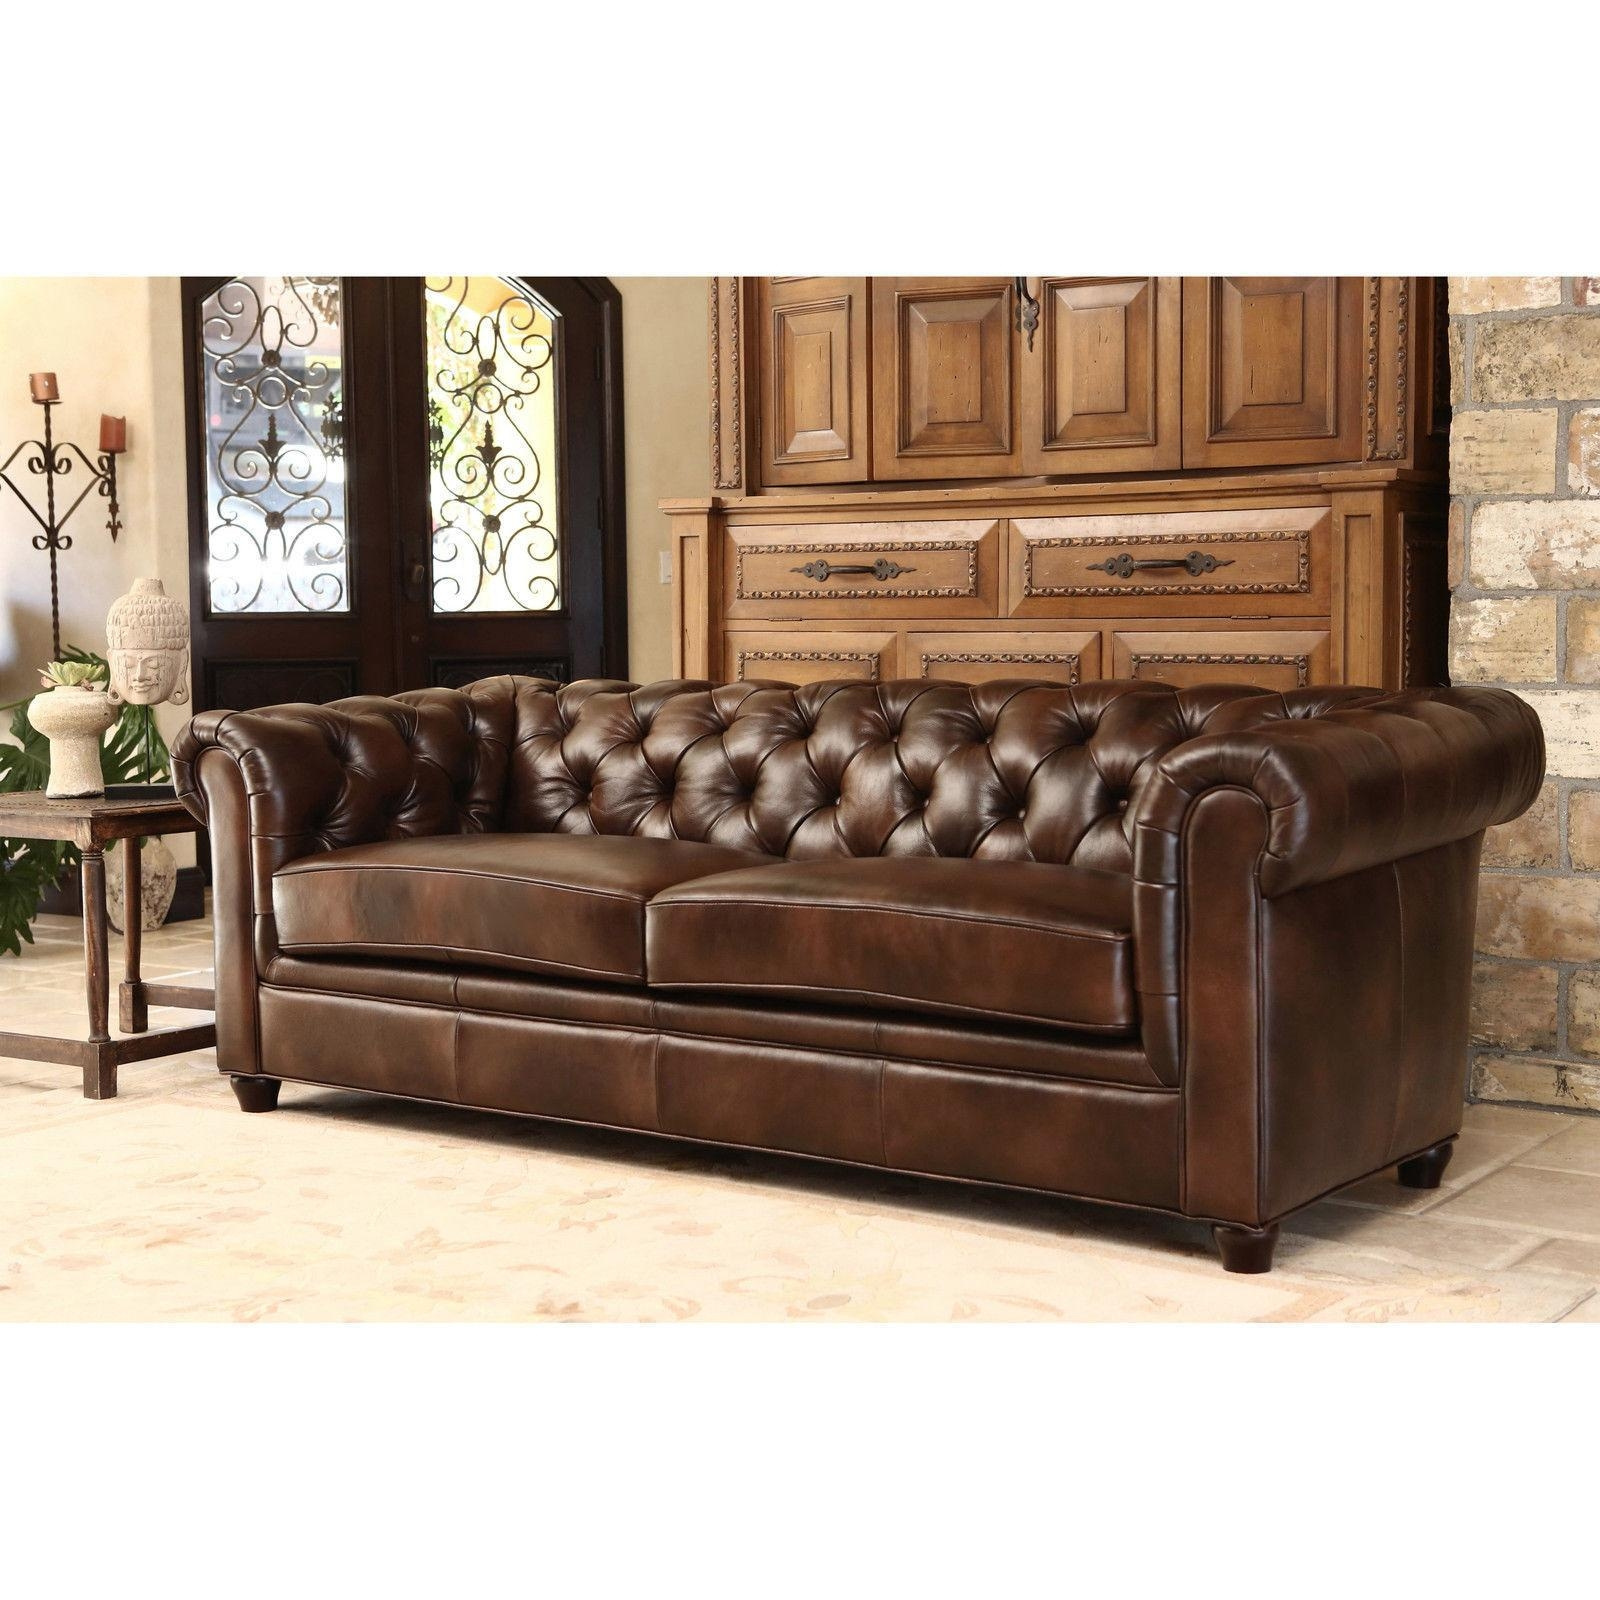 White Leather Tufted Sofa Classic Chesterfield Design Top Grain Regarding Brown Leather Tufted Sofas (Image 20 of 20)